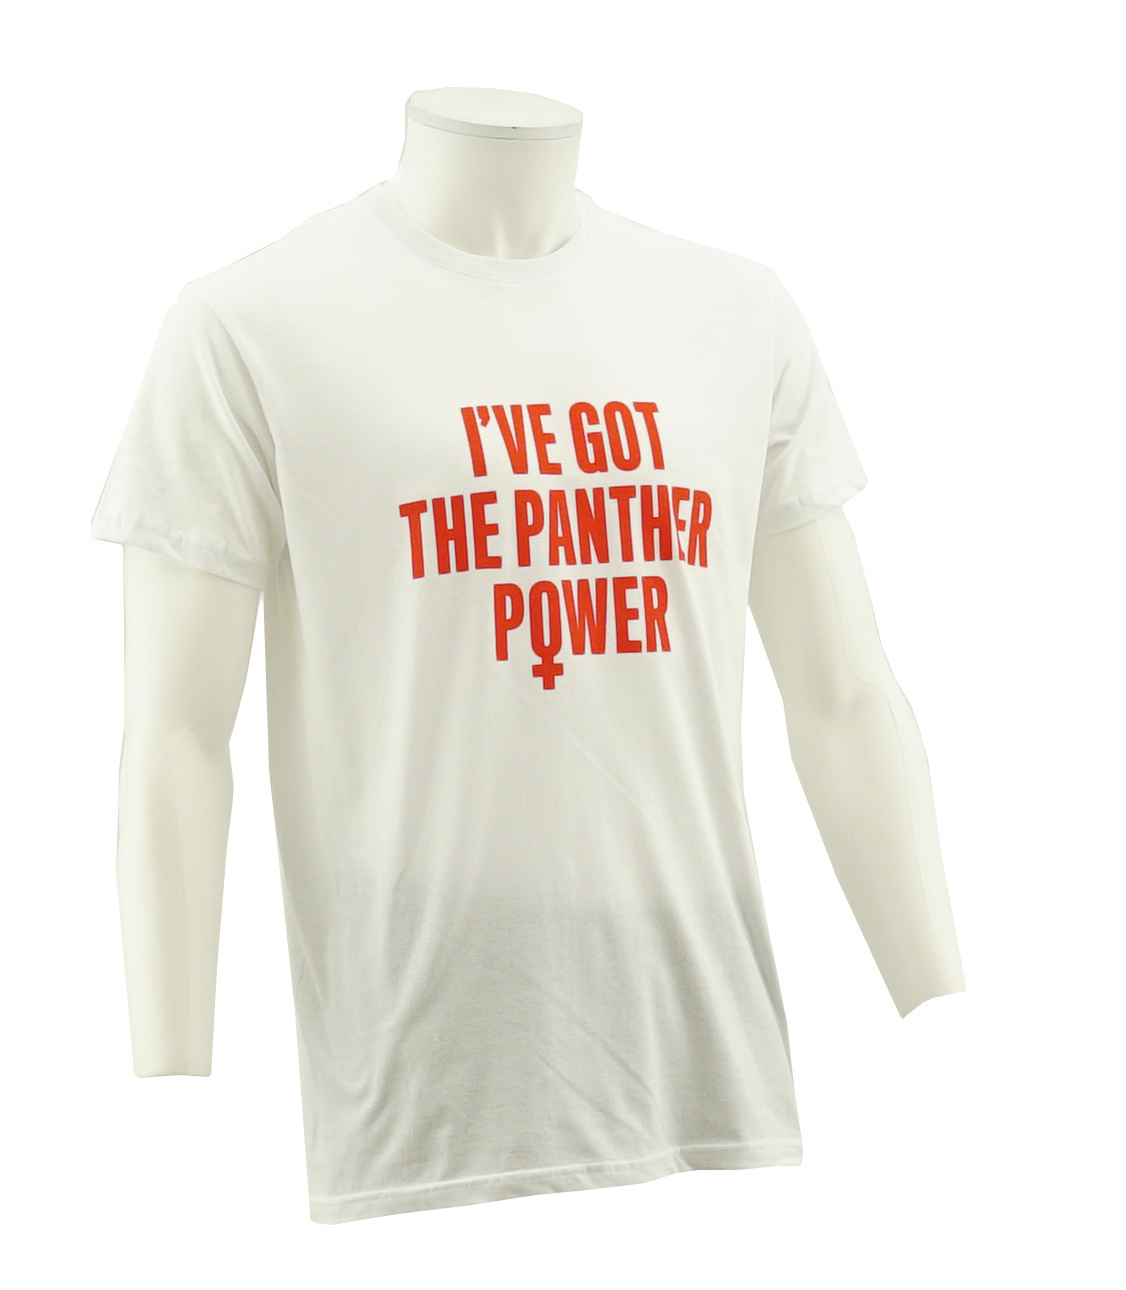 Topfanz T-shirt  I've got the panther power